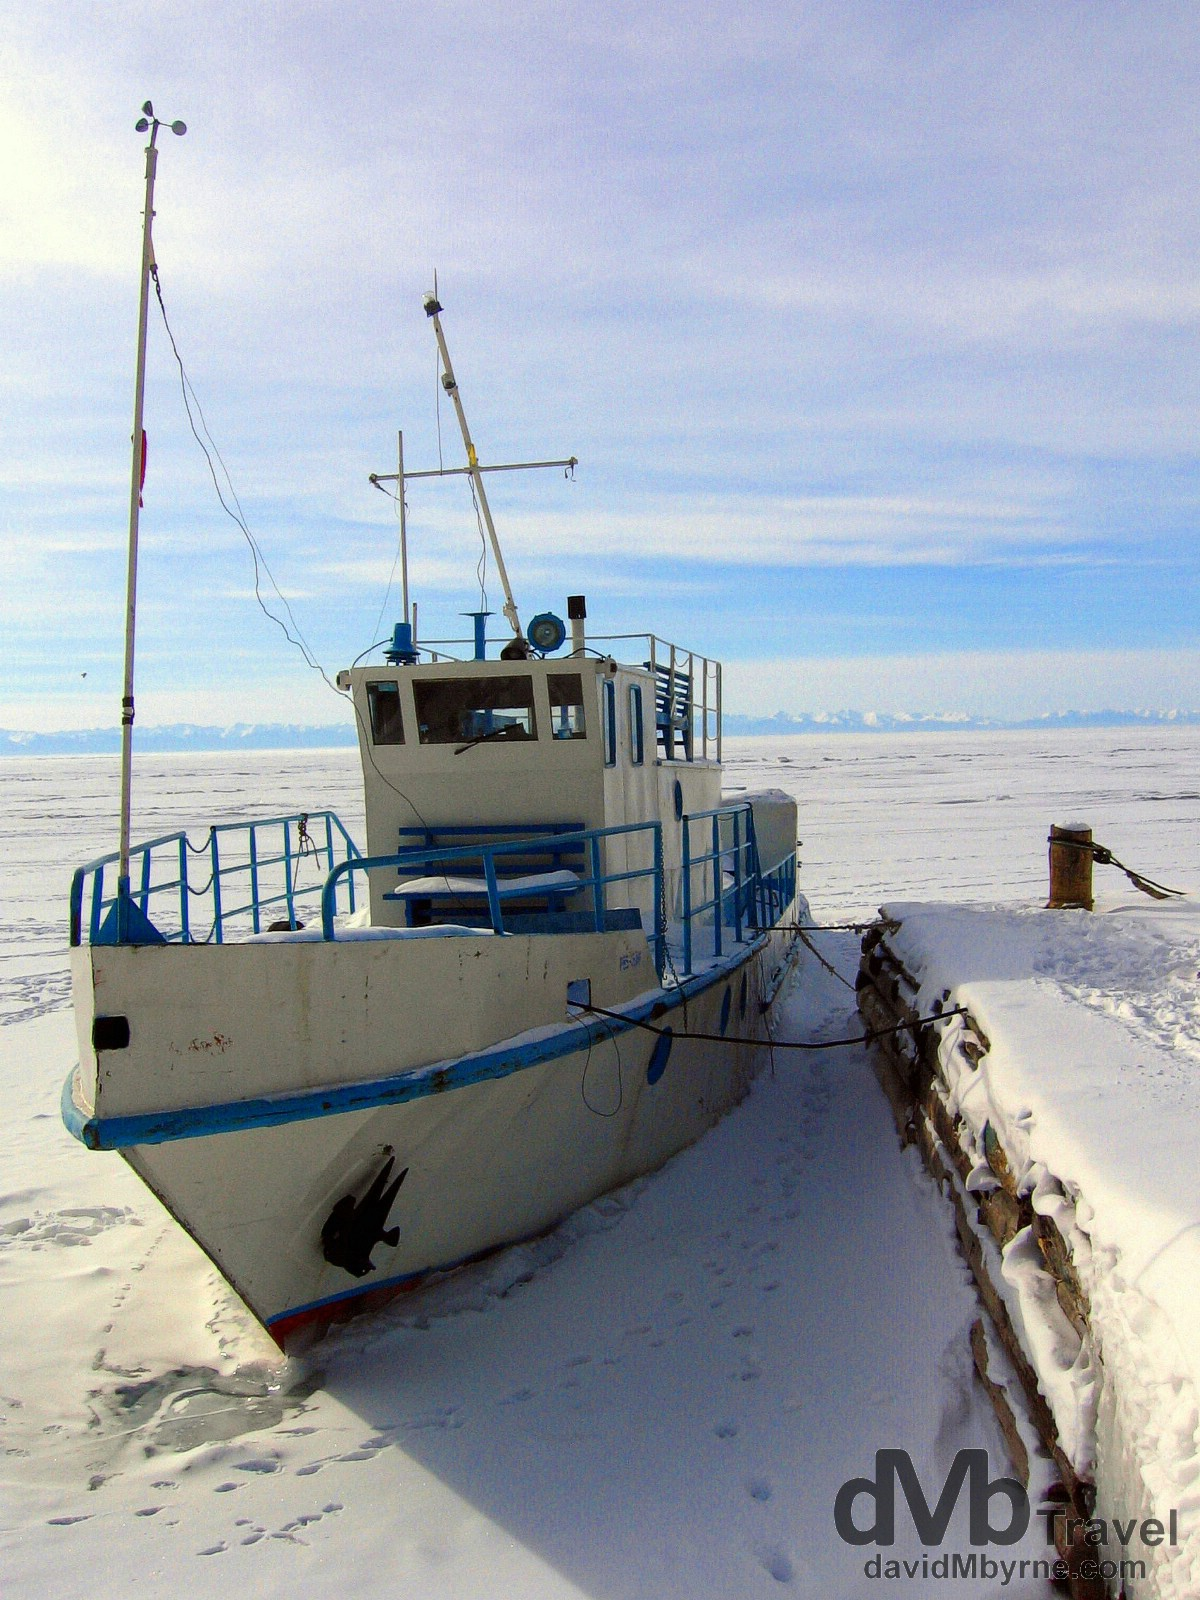 A boat waiting out the winter freeze in the fishing port of Listvyanka on the shores of Lake Baikal. Listvyanka, Siberia, Russia. February 18th, 2006.